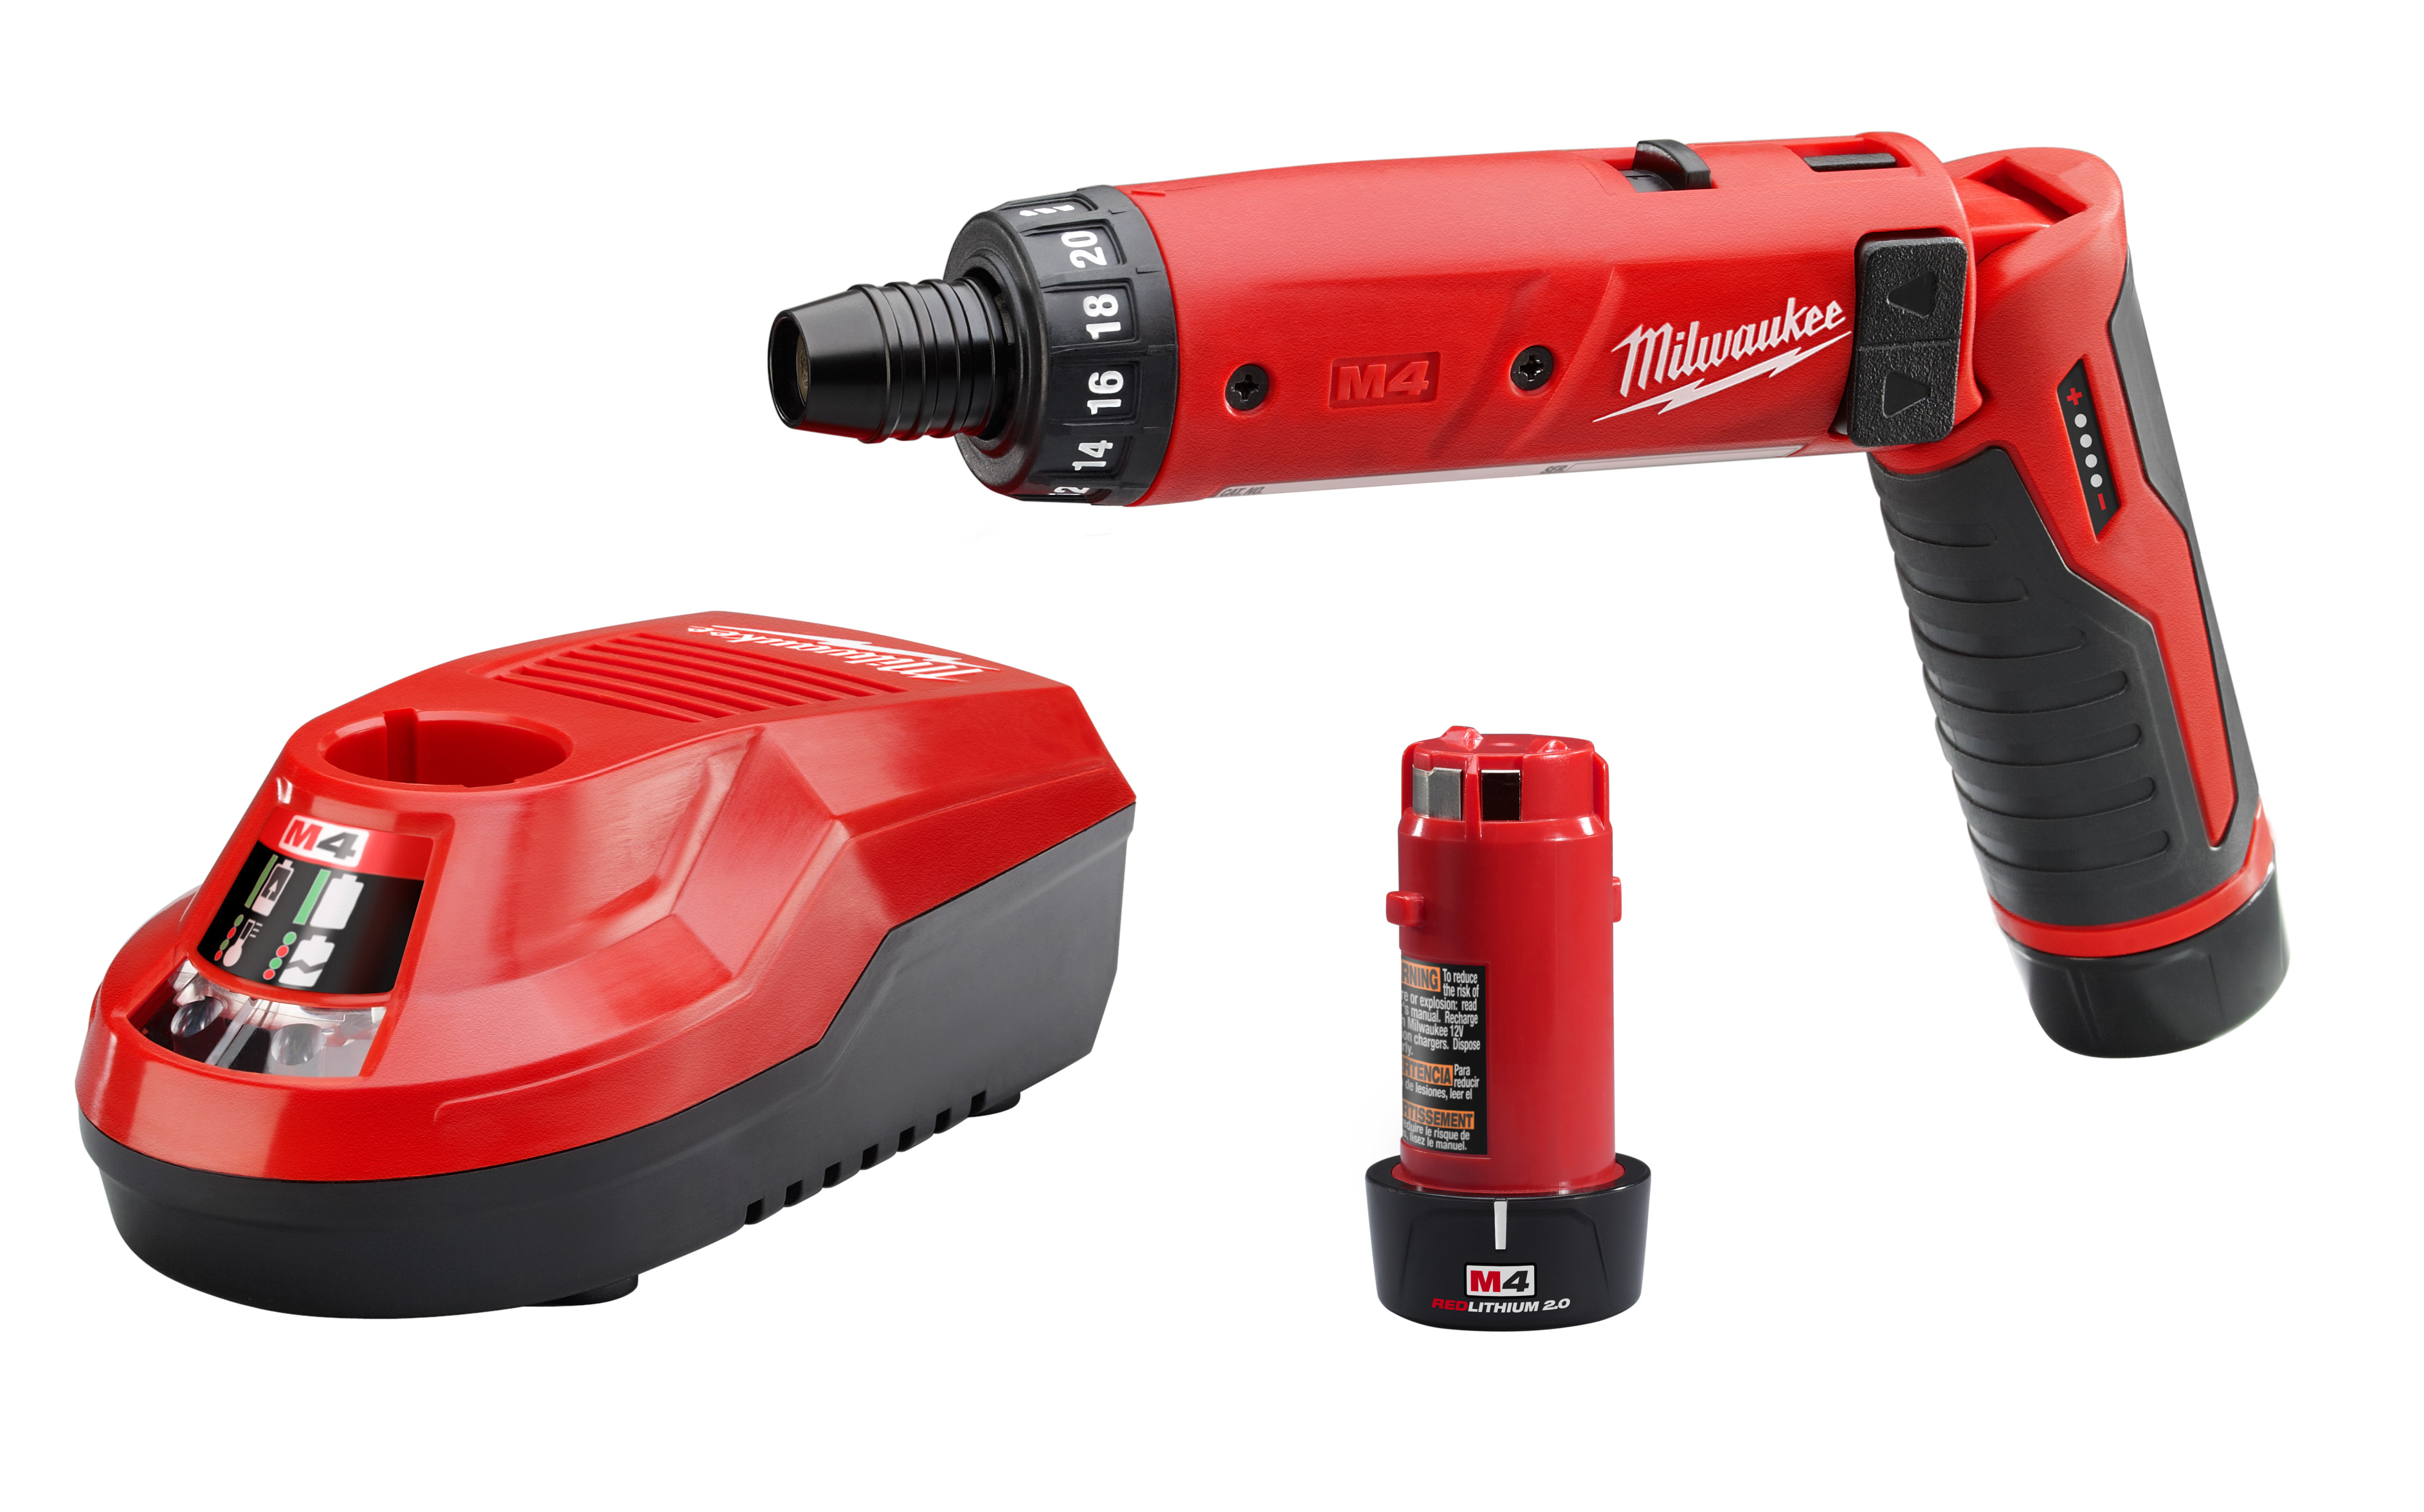 Milwaukee® M4™ 2101-21 Cordless Screwdriver Kit, 1/4 in Chuck, 4 VDC, 44 in-lb Torque, Lithium-Ion Battery